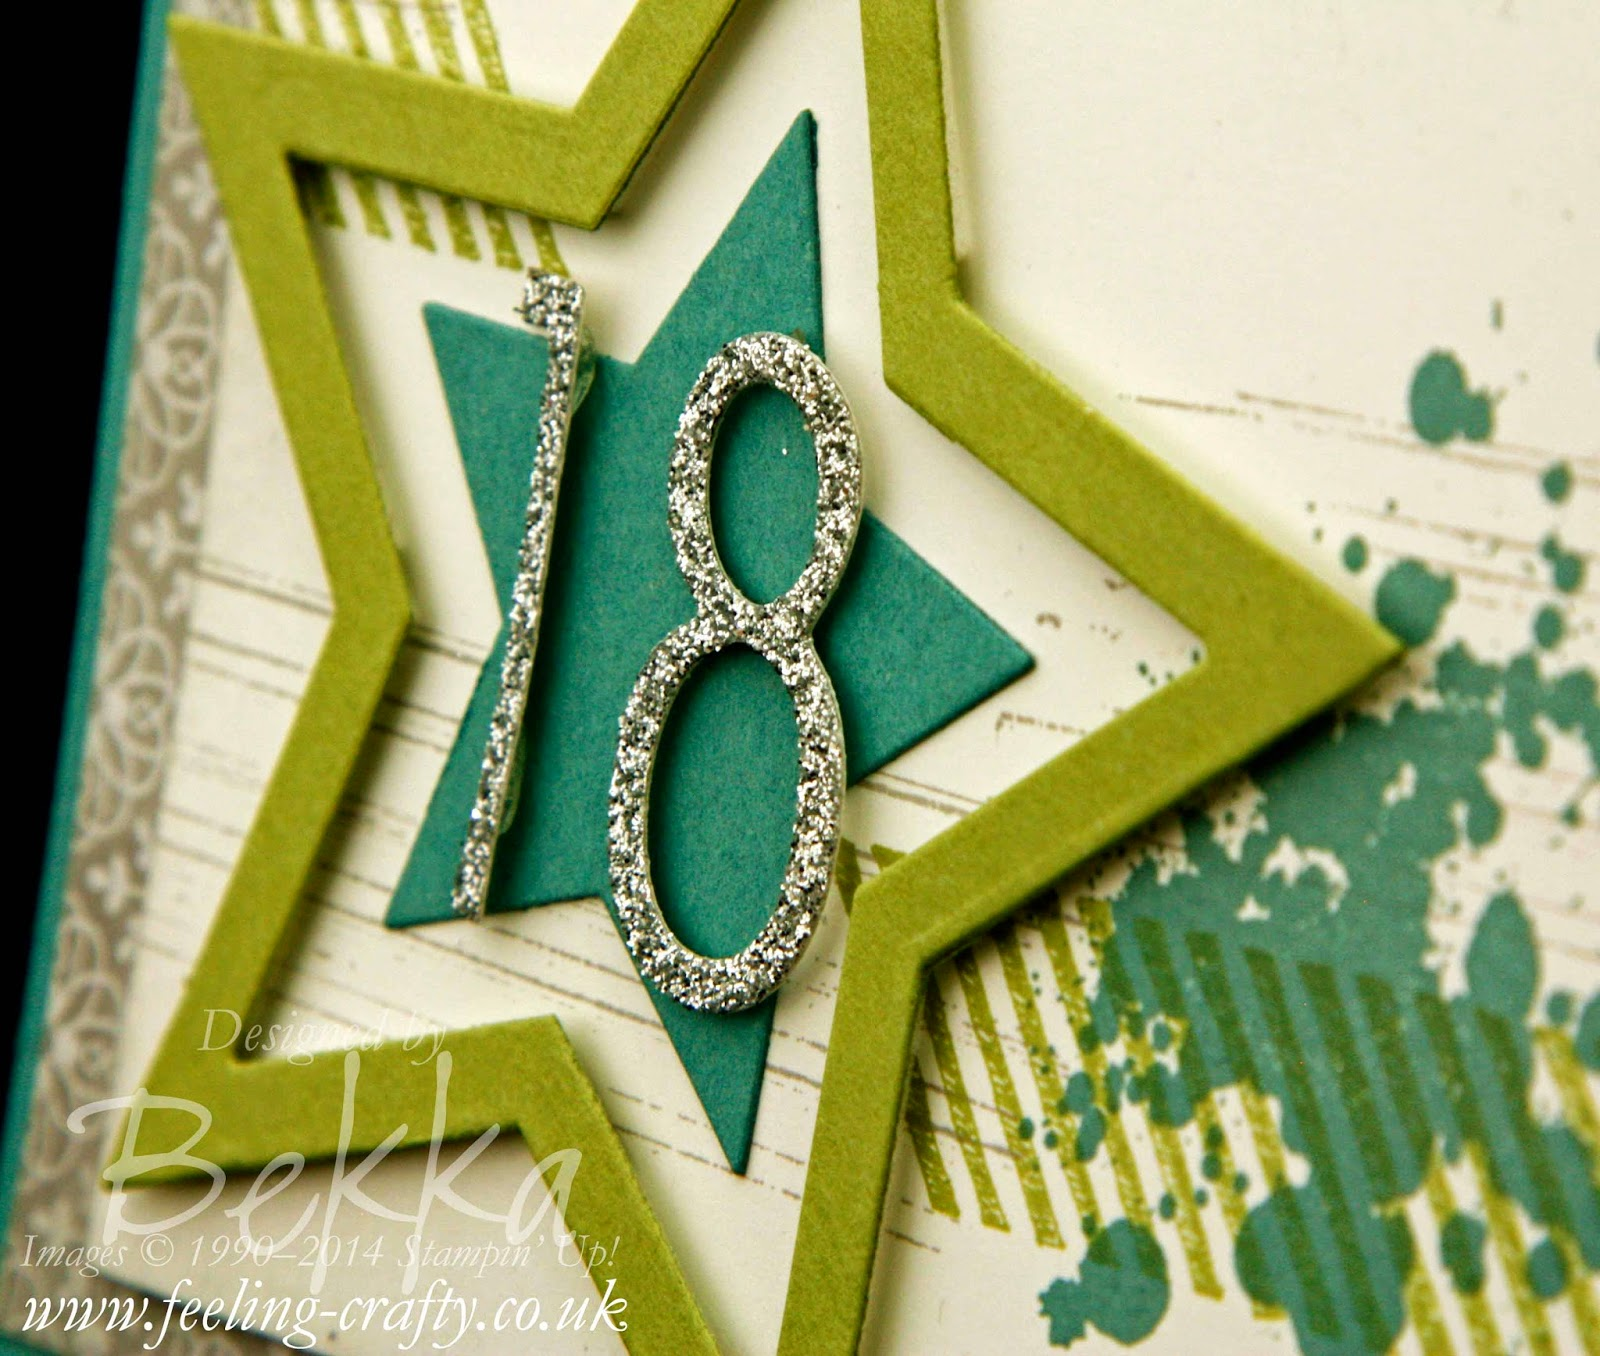 18th Birthday Card for a man using Stampin' Up! Supplies - check this blog for lots of great ideas